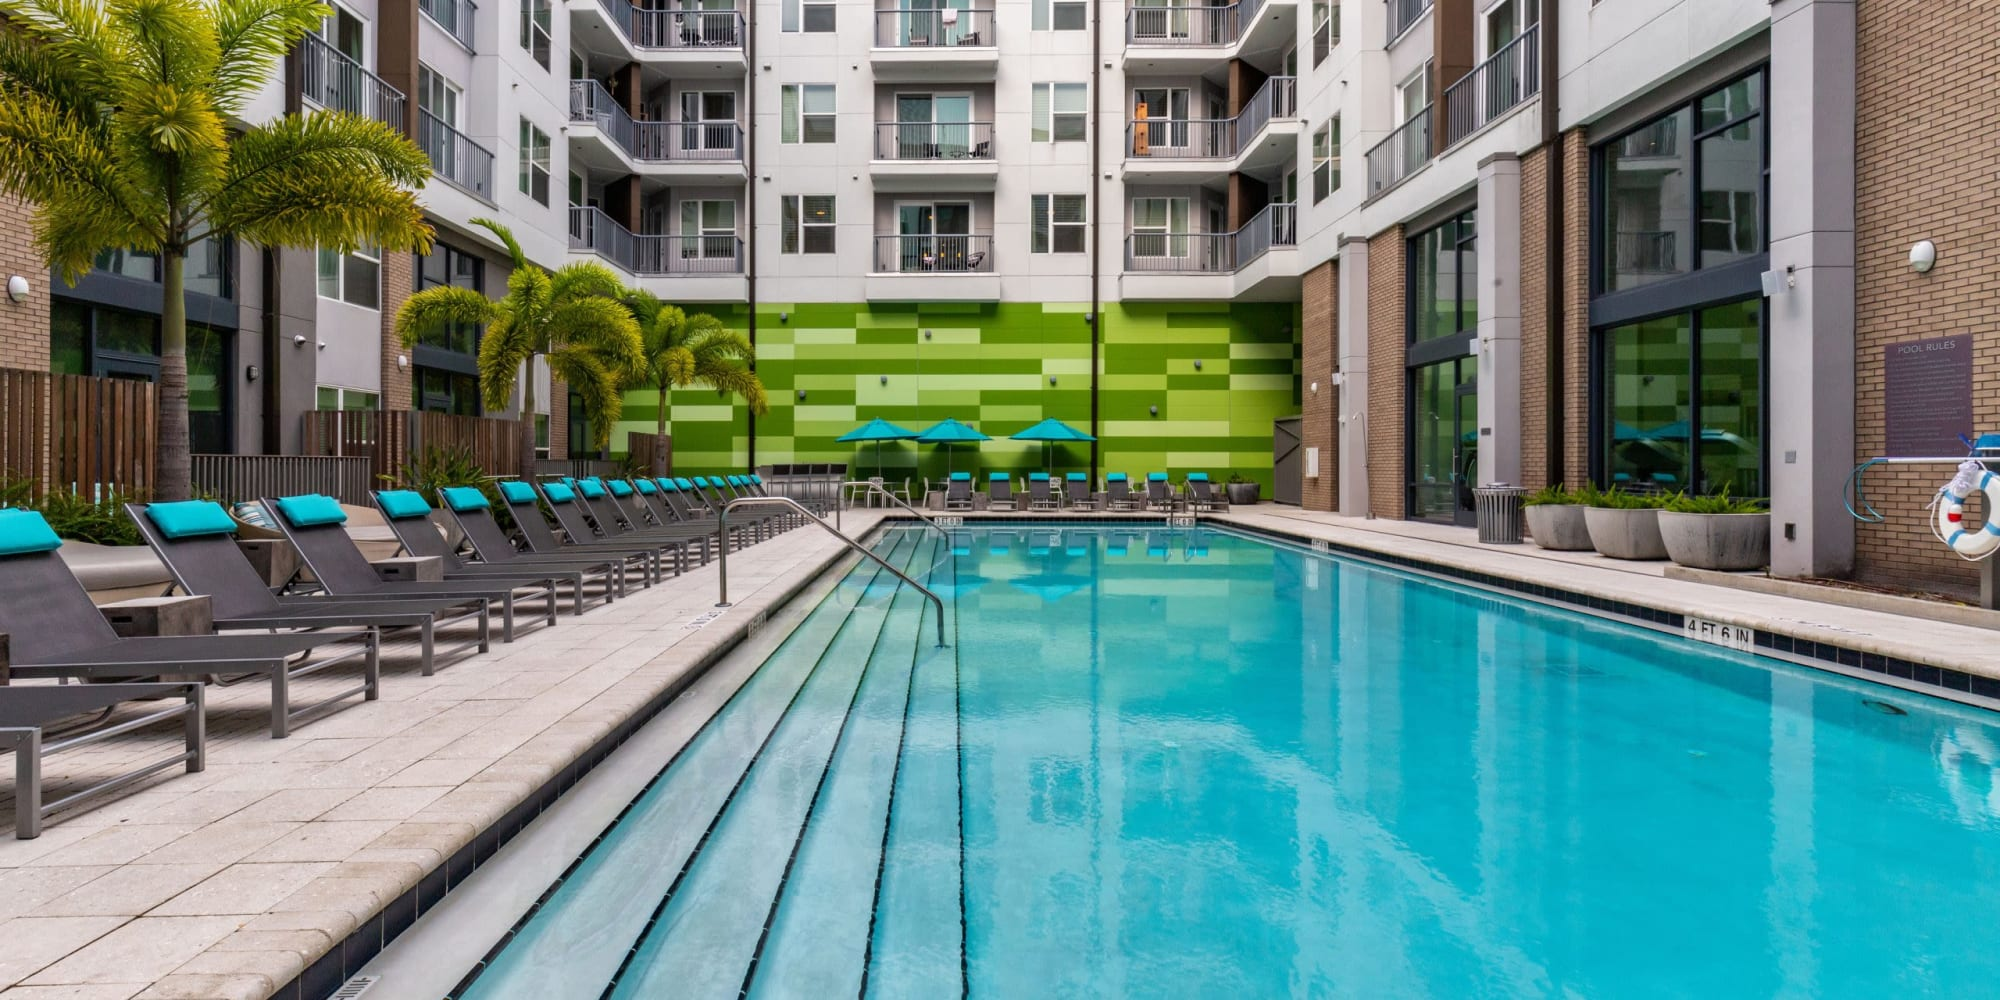 Apartments at Central Station on Orange in Orlando, Florida